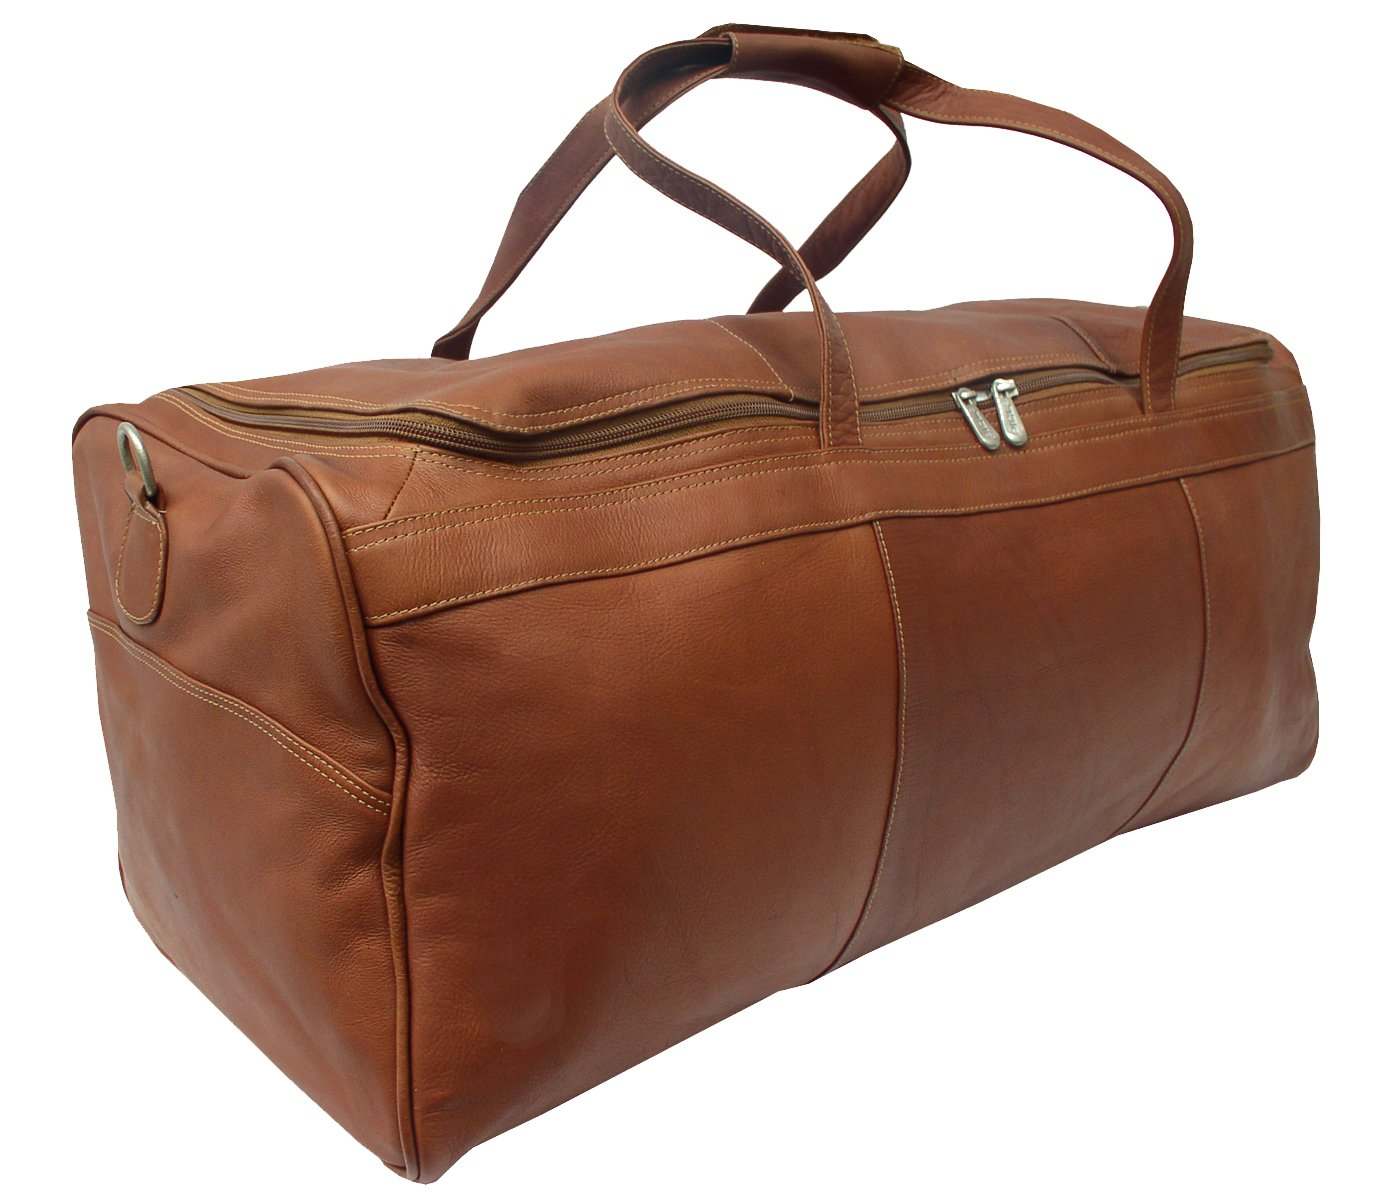 Piel Leather Traveler's Select Large Duffel Bag in Saddle by Piel Leather